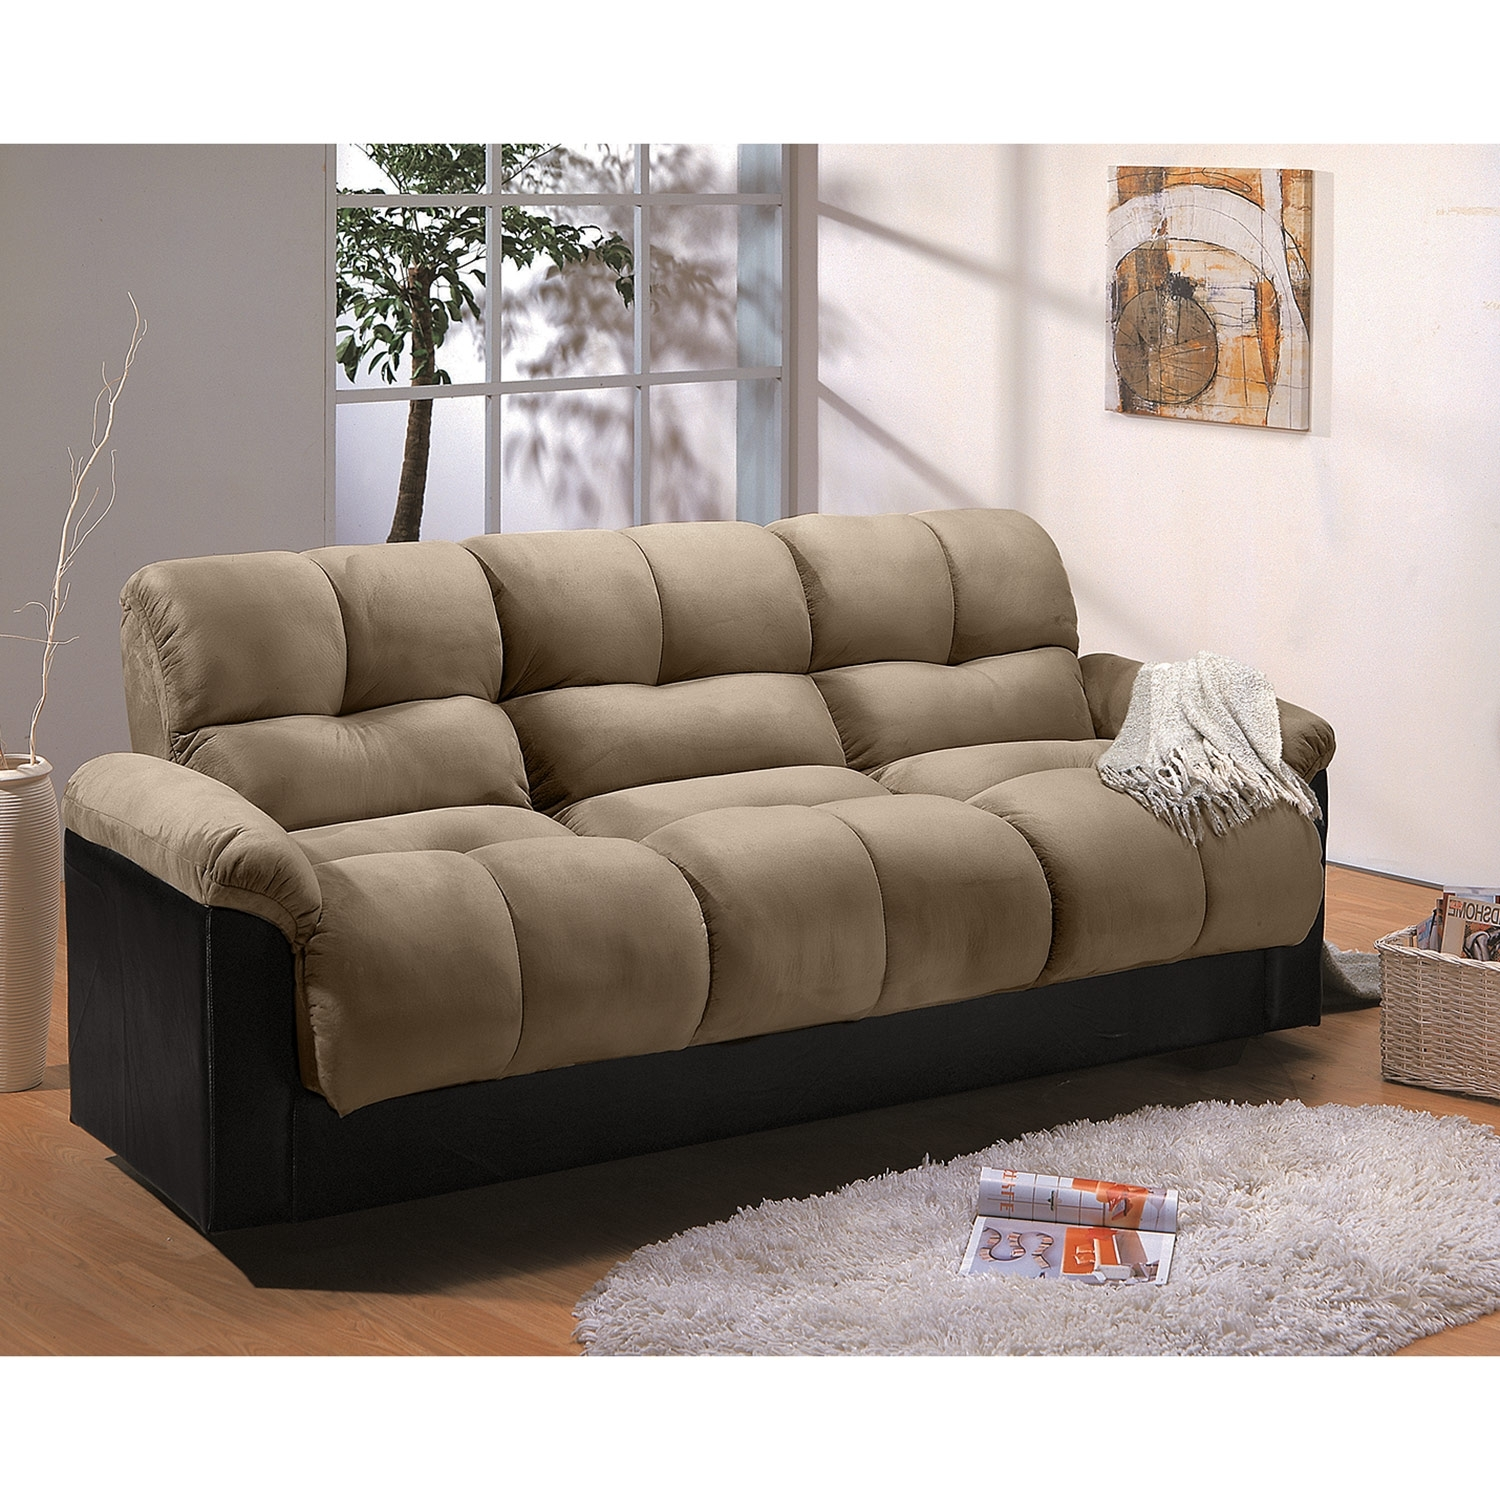 Bed Sofa Furniture Raya Furniture Pertaining To Cool Sofa Beds (Image 3 of 15)